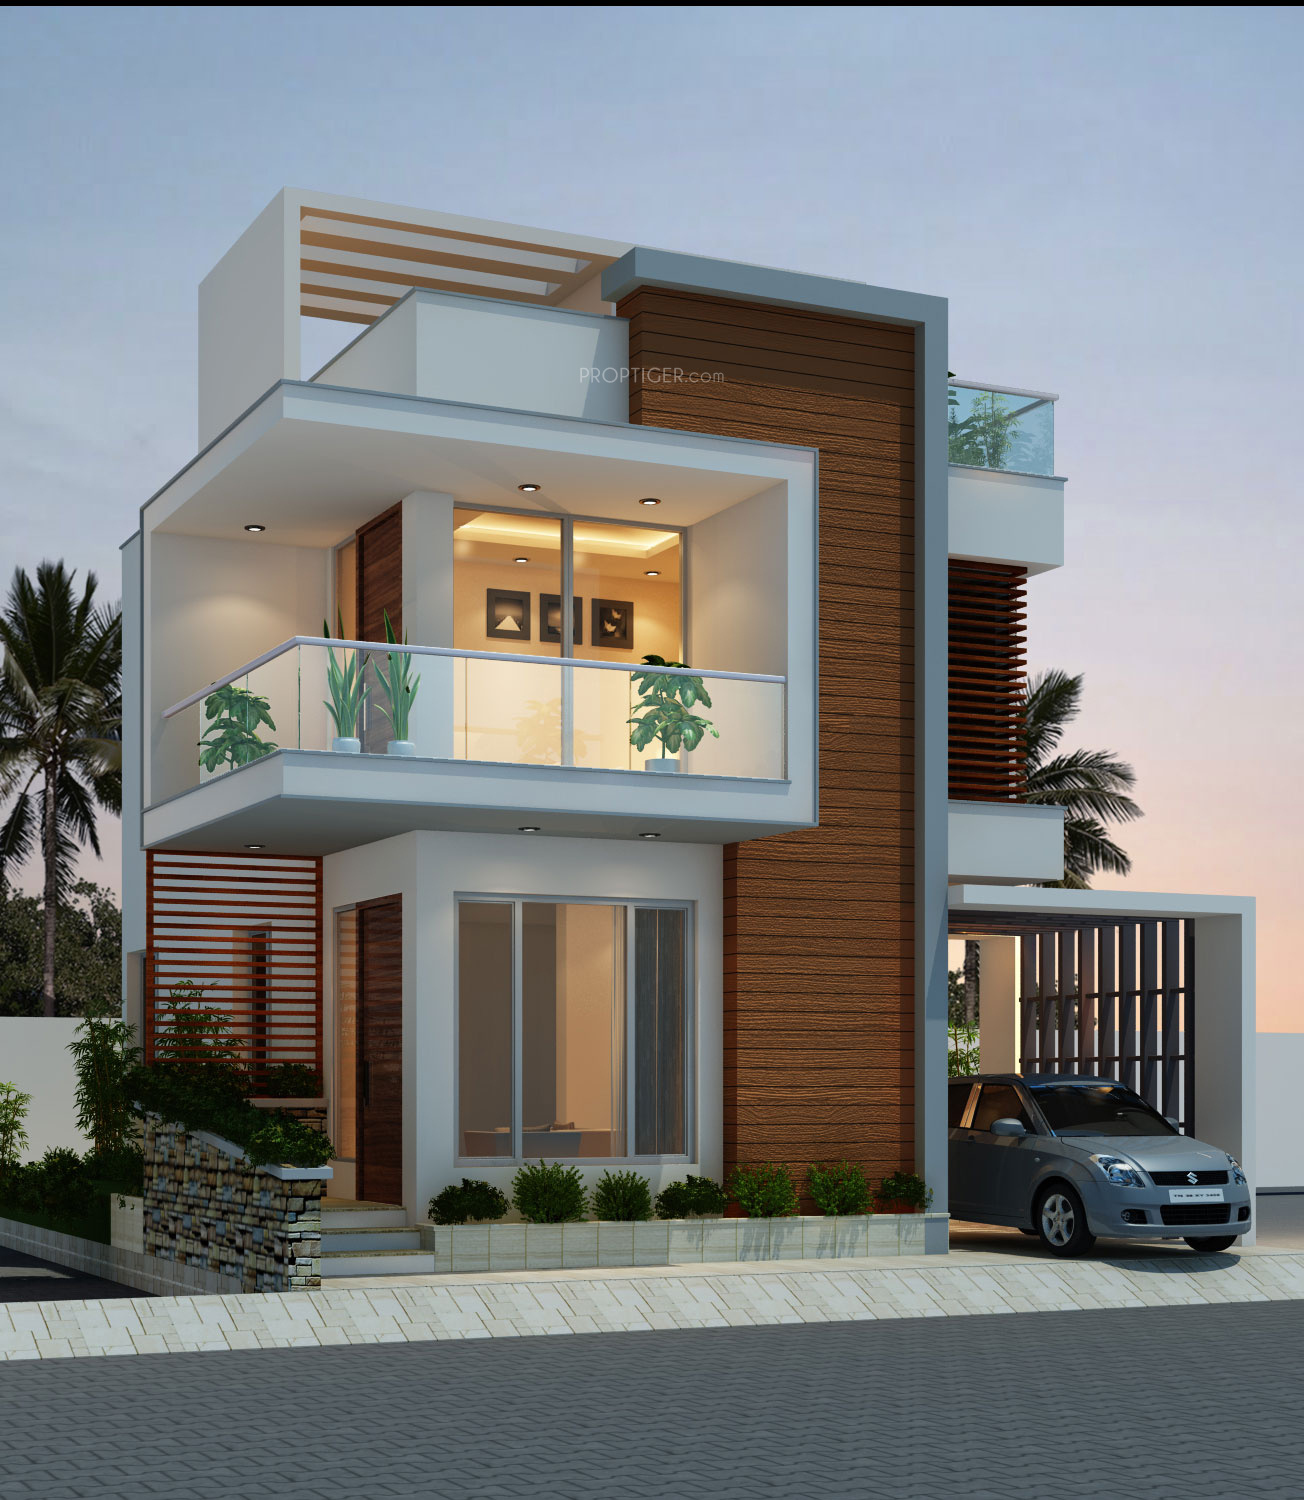 Headway fortune residency villa in perungalathur chennai for In home design consultant